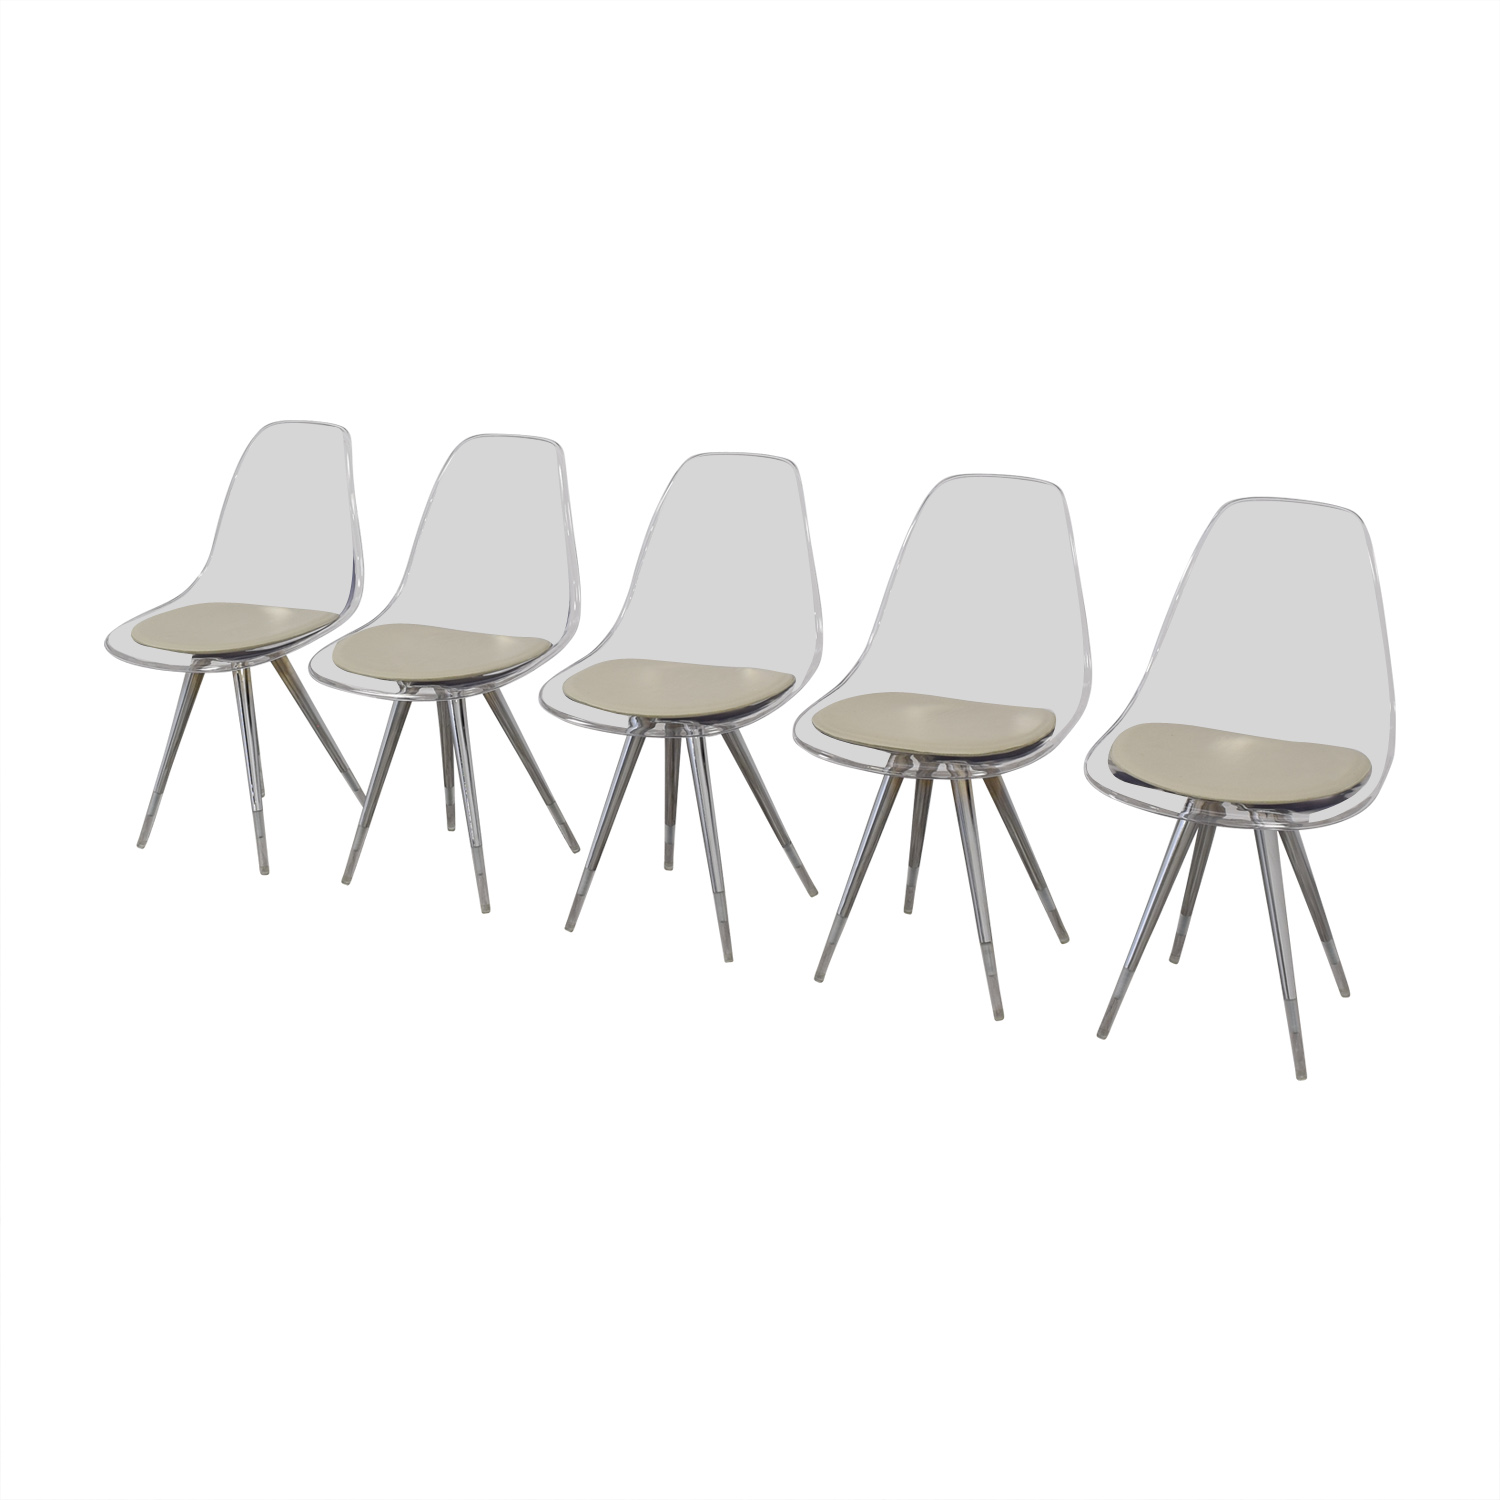 buy Cite NYC Lucite Dining Chairs with Custom Cushions Cite NYC Dining Chairs